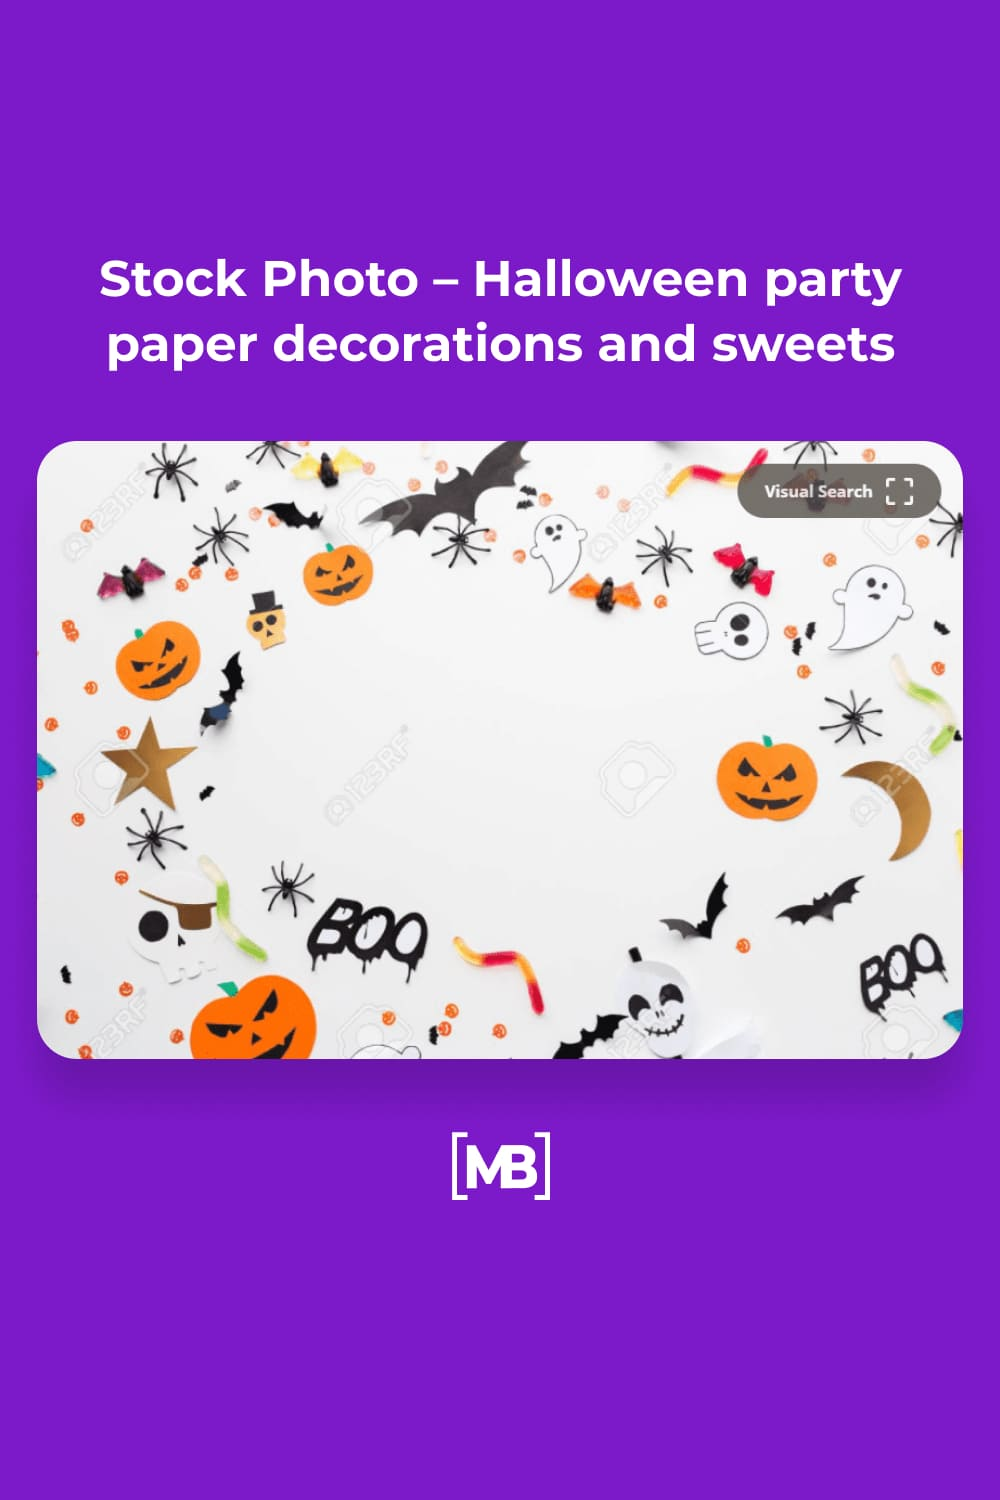 11 Stock Photo – Halloween party paper decorations and sweets